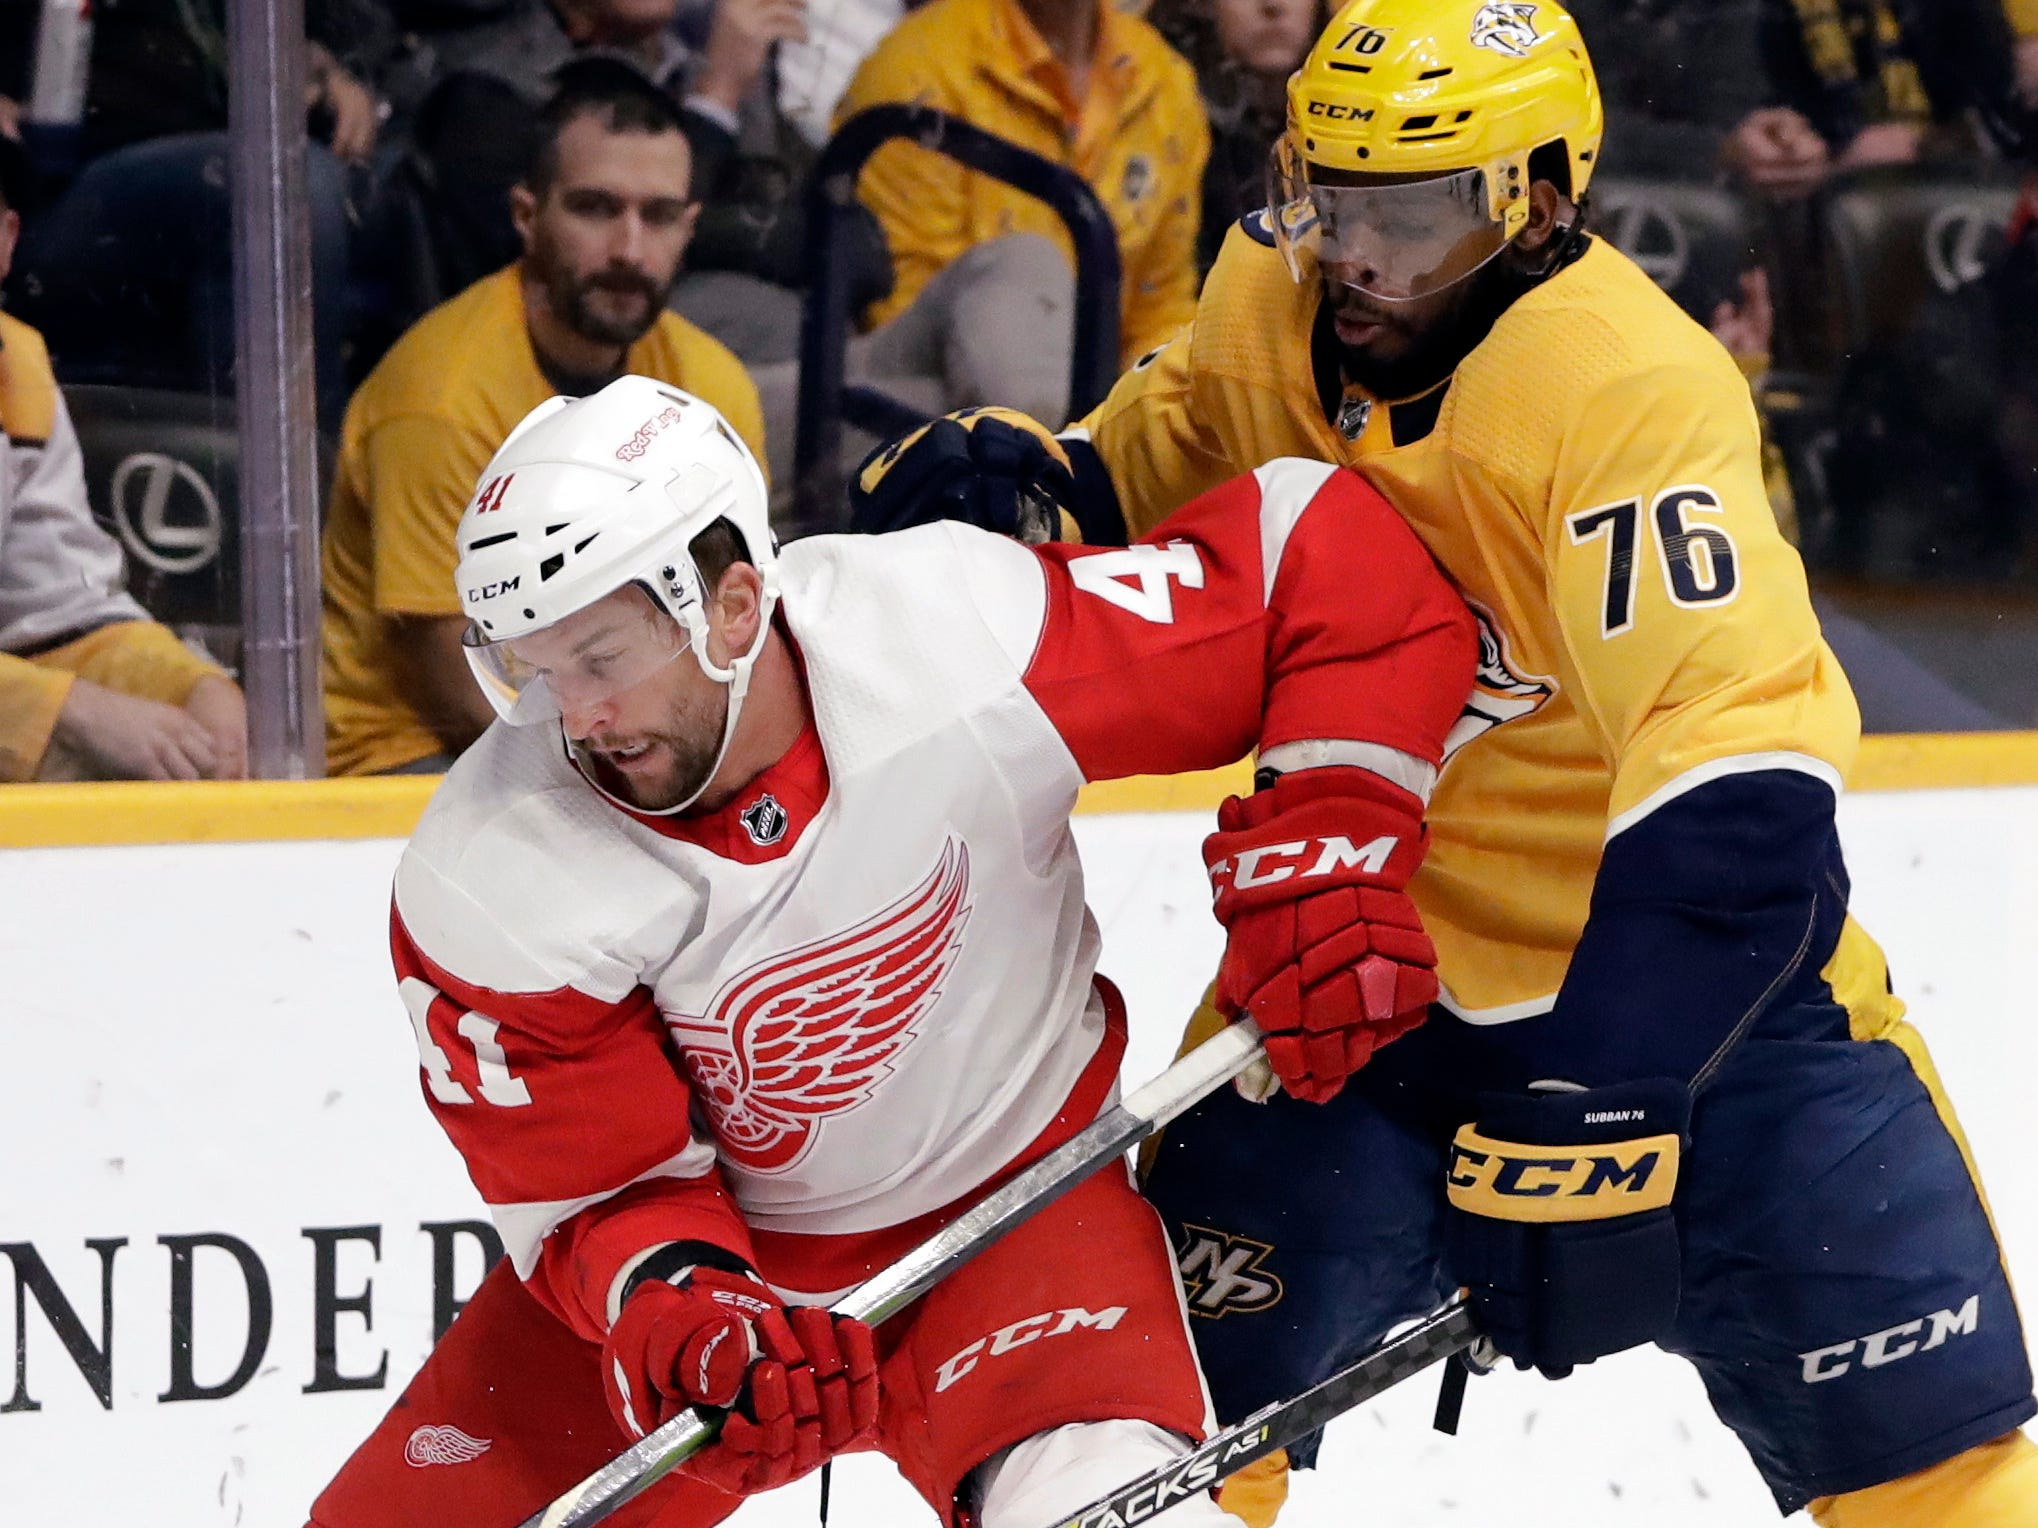 Detroit Red Wings center Luke Glendening (41) is defended by Nashville Predators' P.K. Subban (76) during the first period.